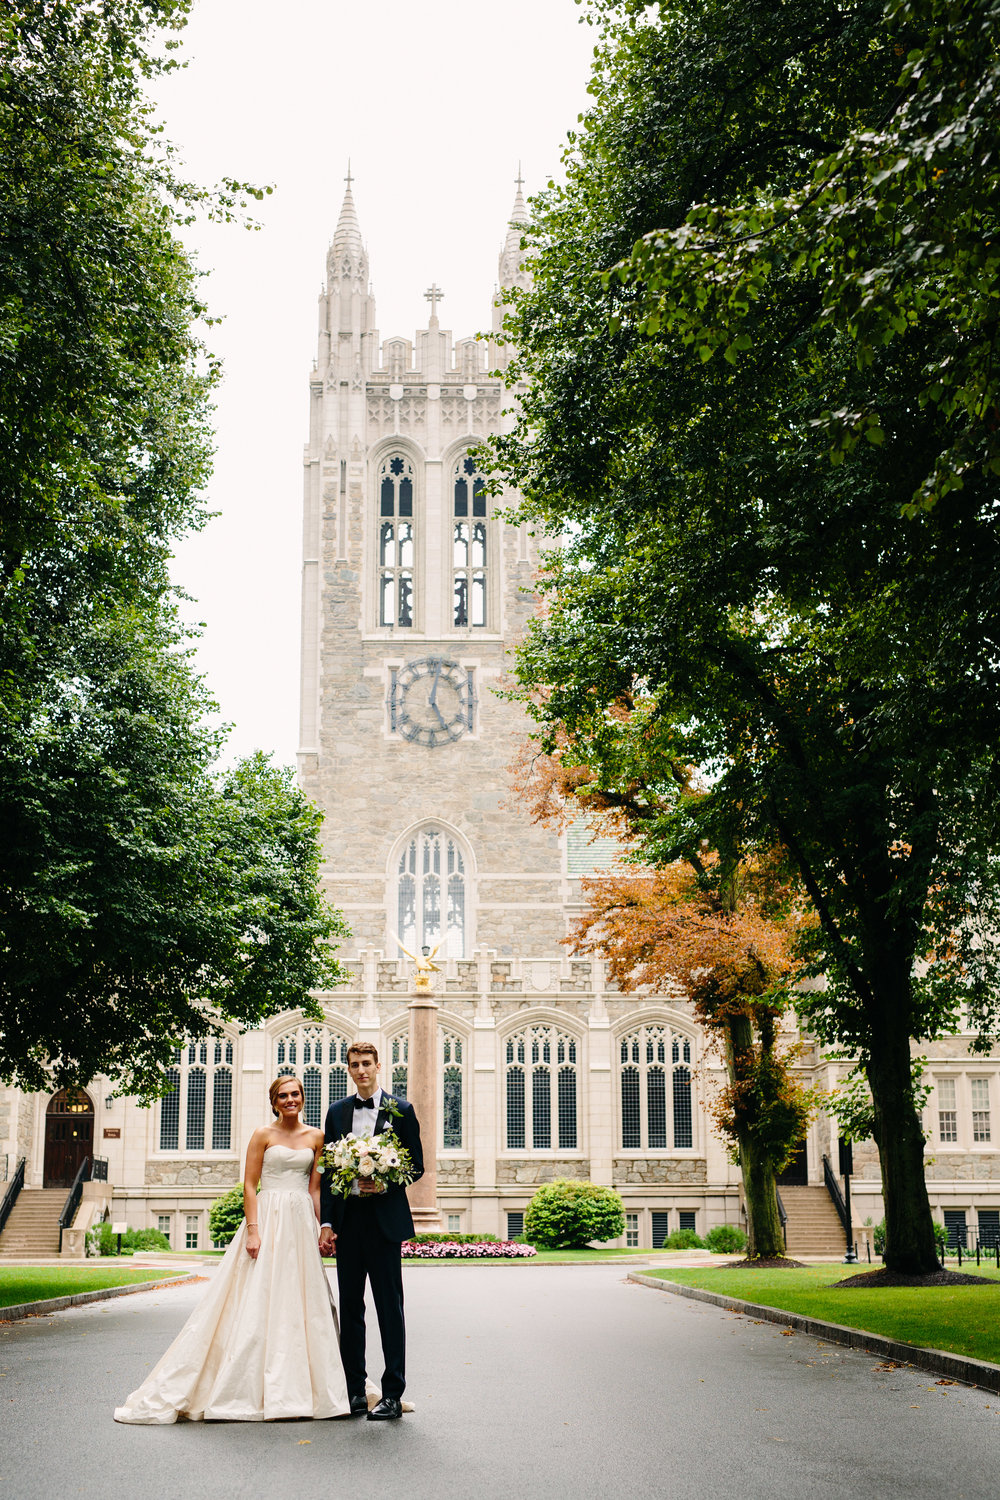 M+E's Classic Summer Wedding at Metropolitan Waterworks Museum